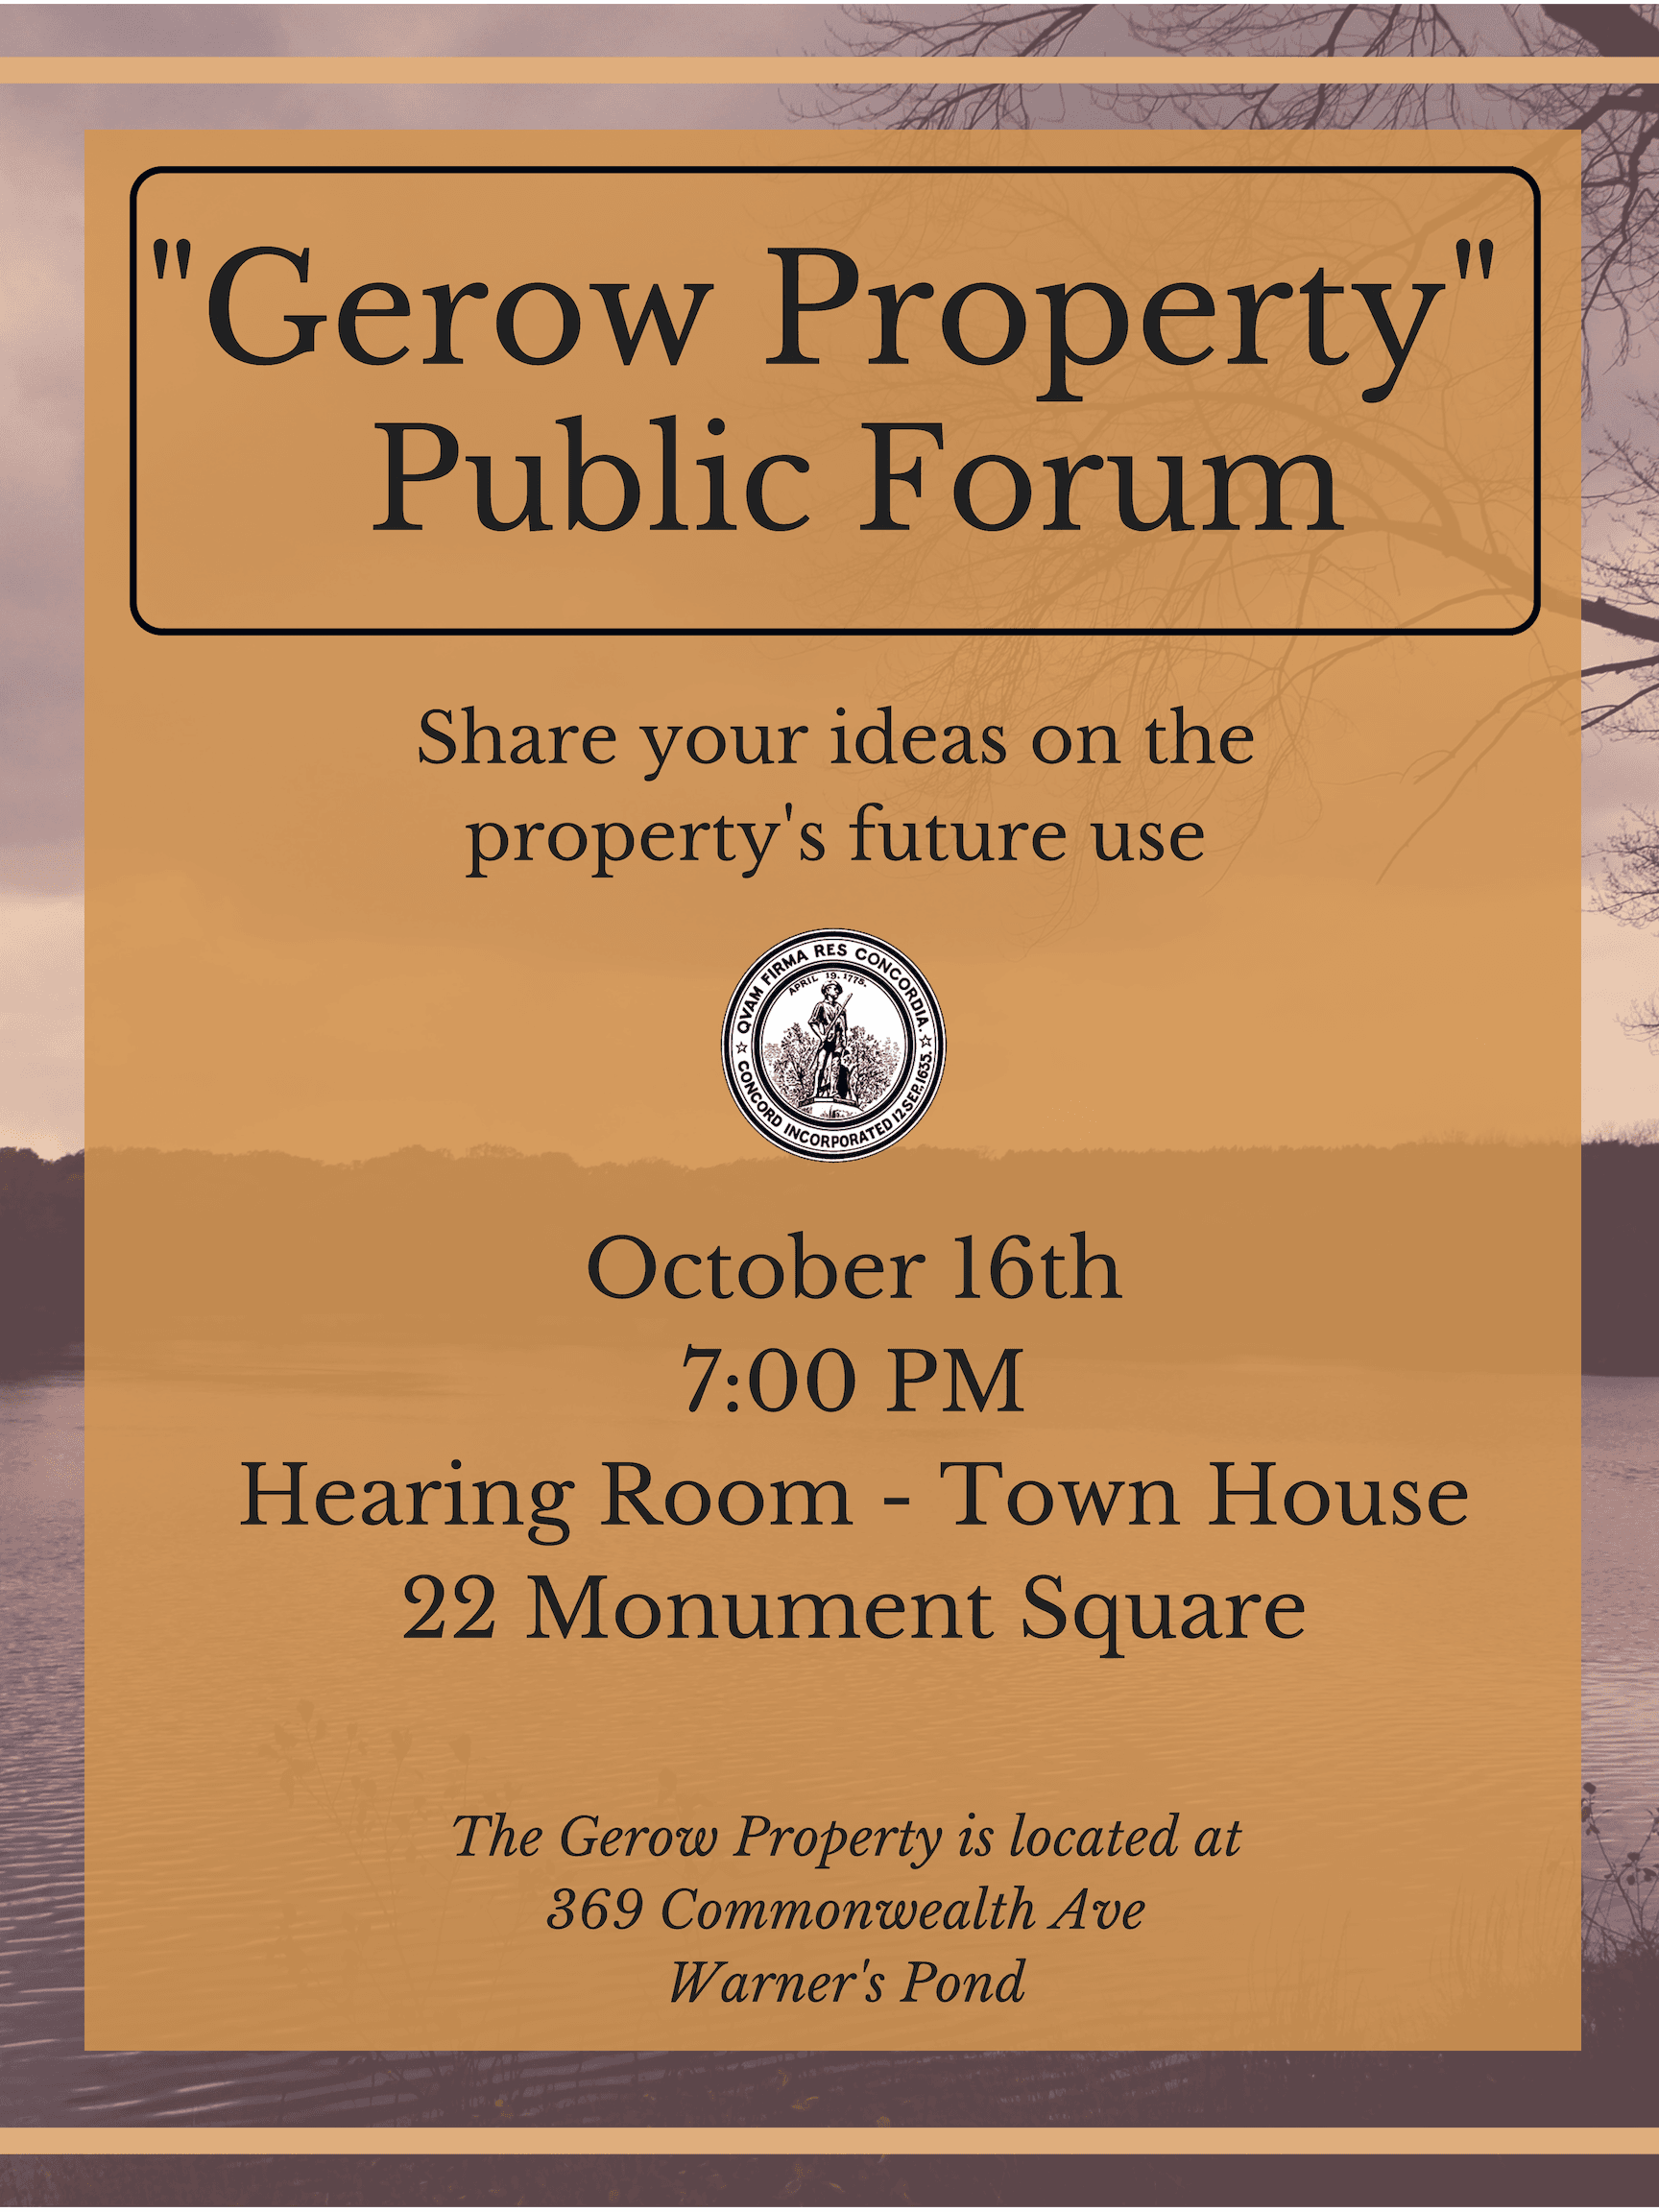 Public Forum for Gerow Property Oct 16th at 7pm